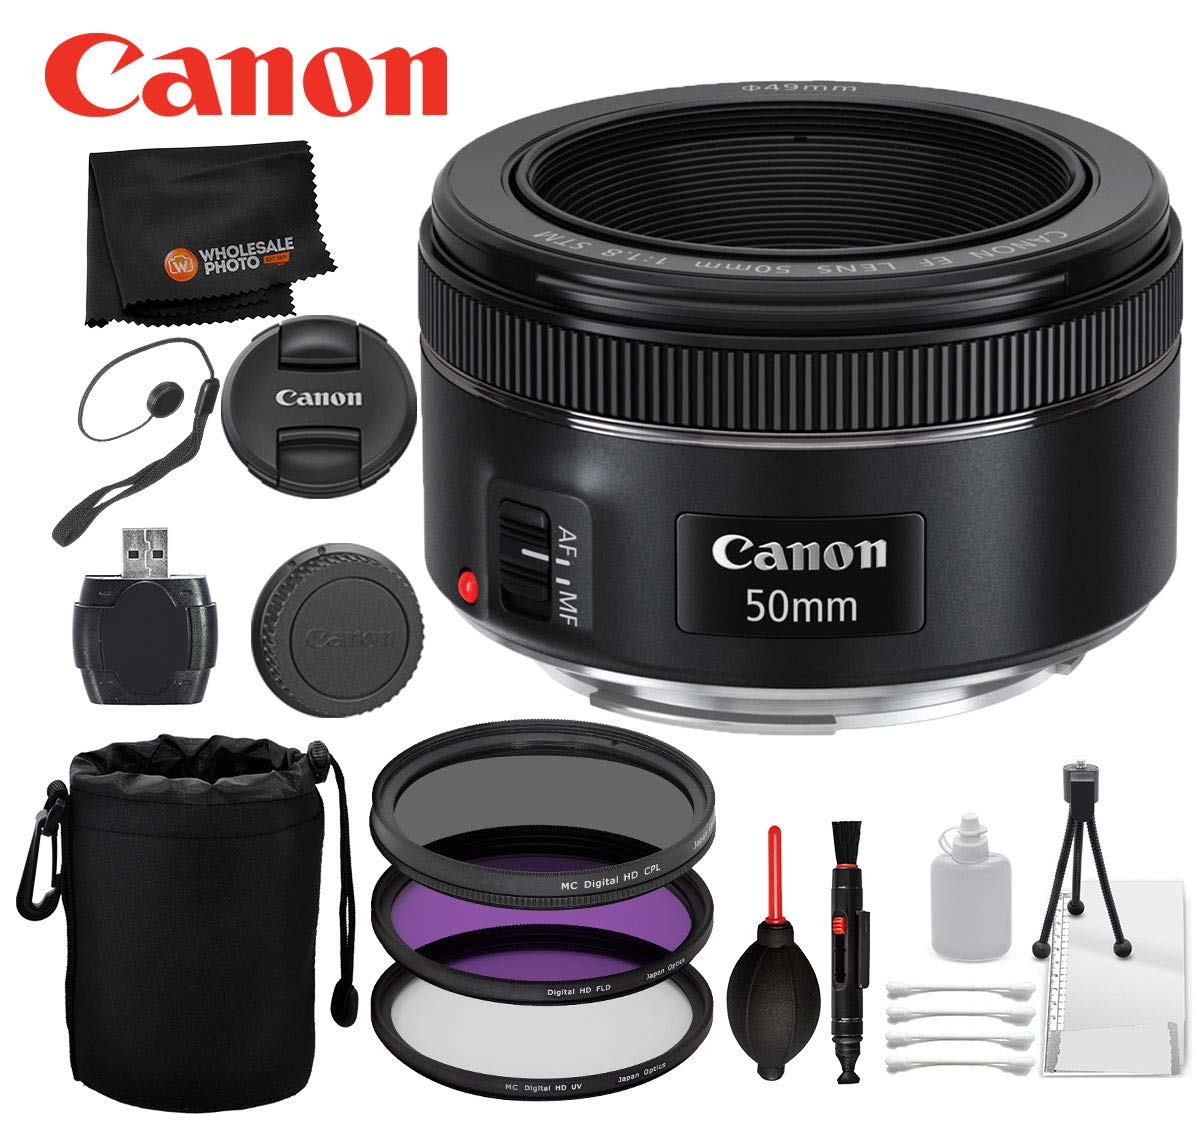 Canon EF 50mm f/1.8 STM Lens with Professional Bundle Package Deal Kit for EOS 7D Mark II, 6D Mark II, 5D Mark IV, 5D S R, 5D S, 5D Mark III, 80D, 70D, 77D, T5, T6, T6s, T7i, SL2 by Canon (Image #1)